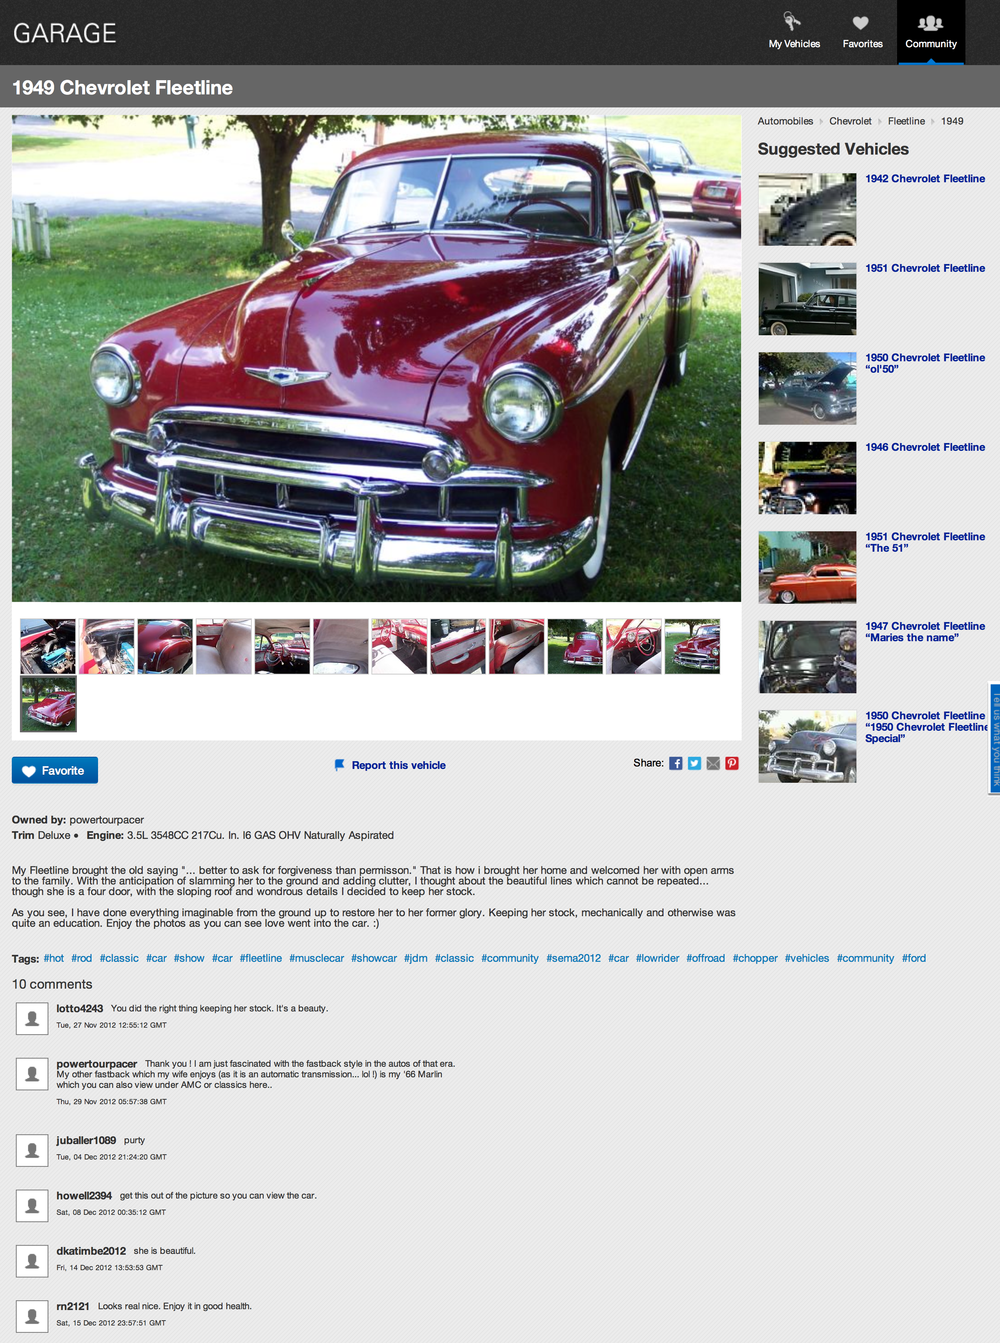 A vehicle profile on eBay Garage